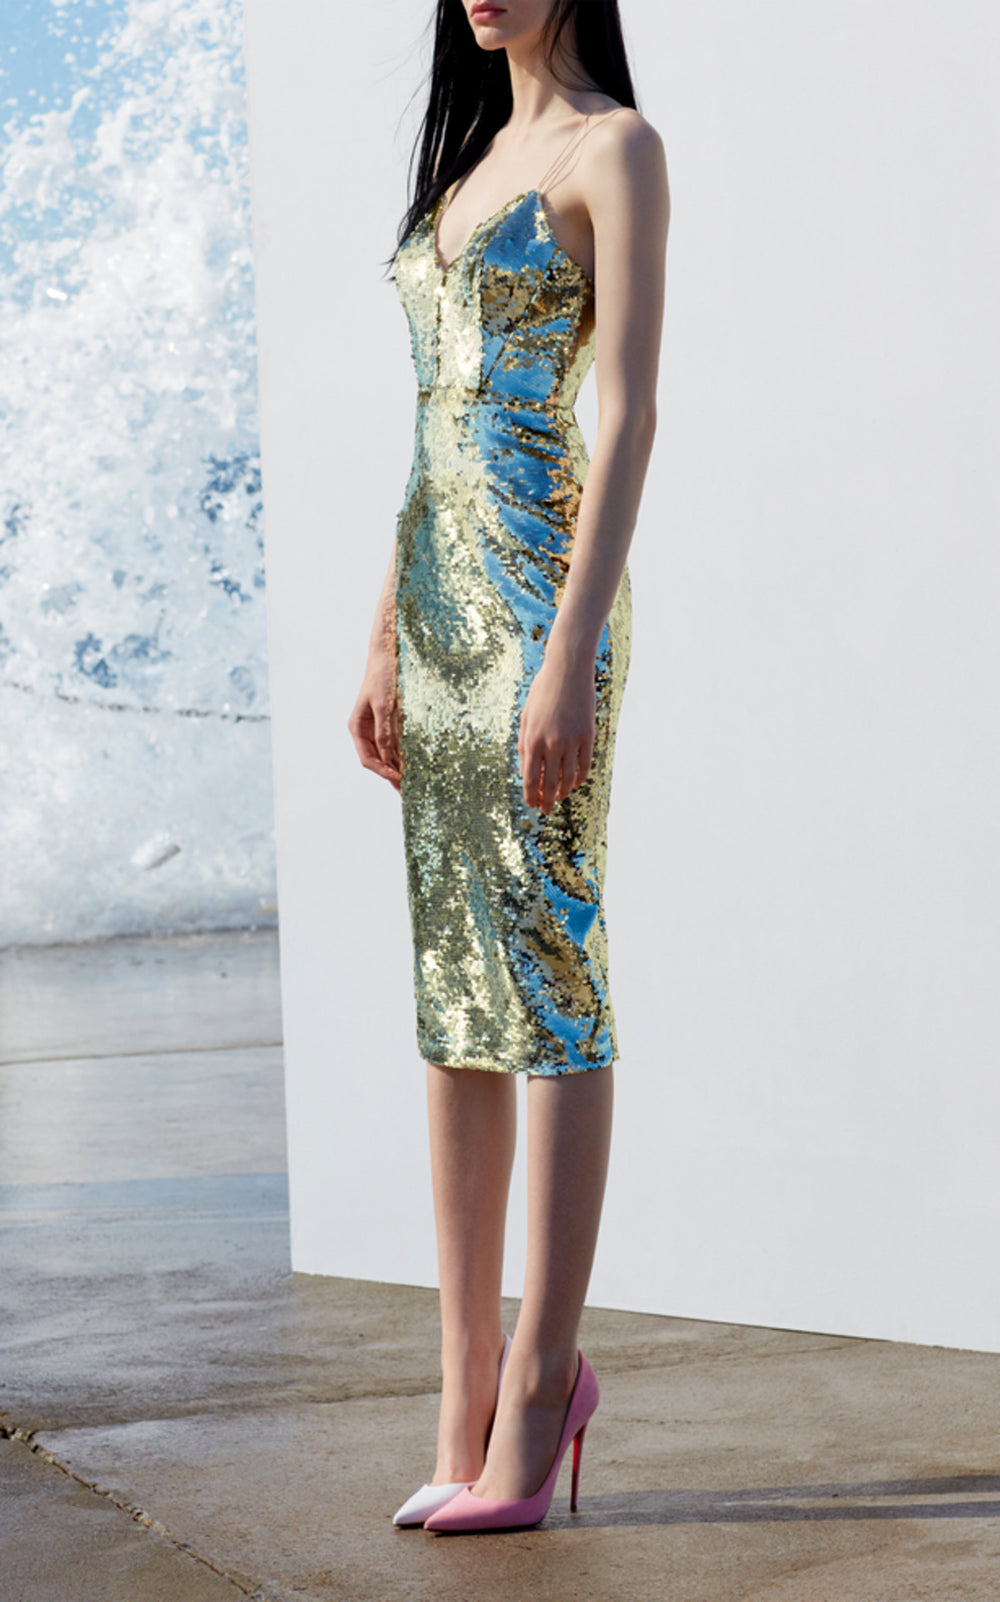 The Alex Perry Eva Sequin Lady Dress at Maximillia eBoutique